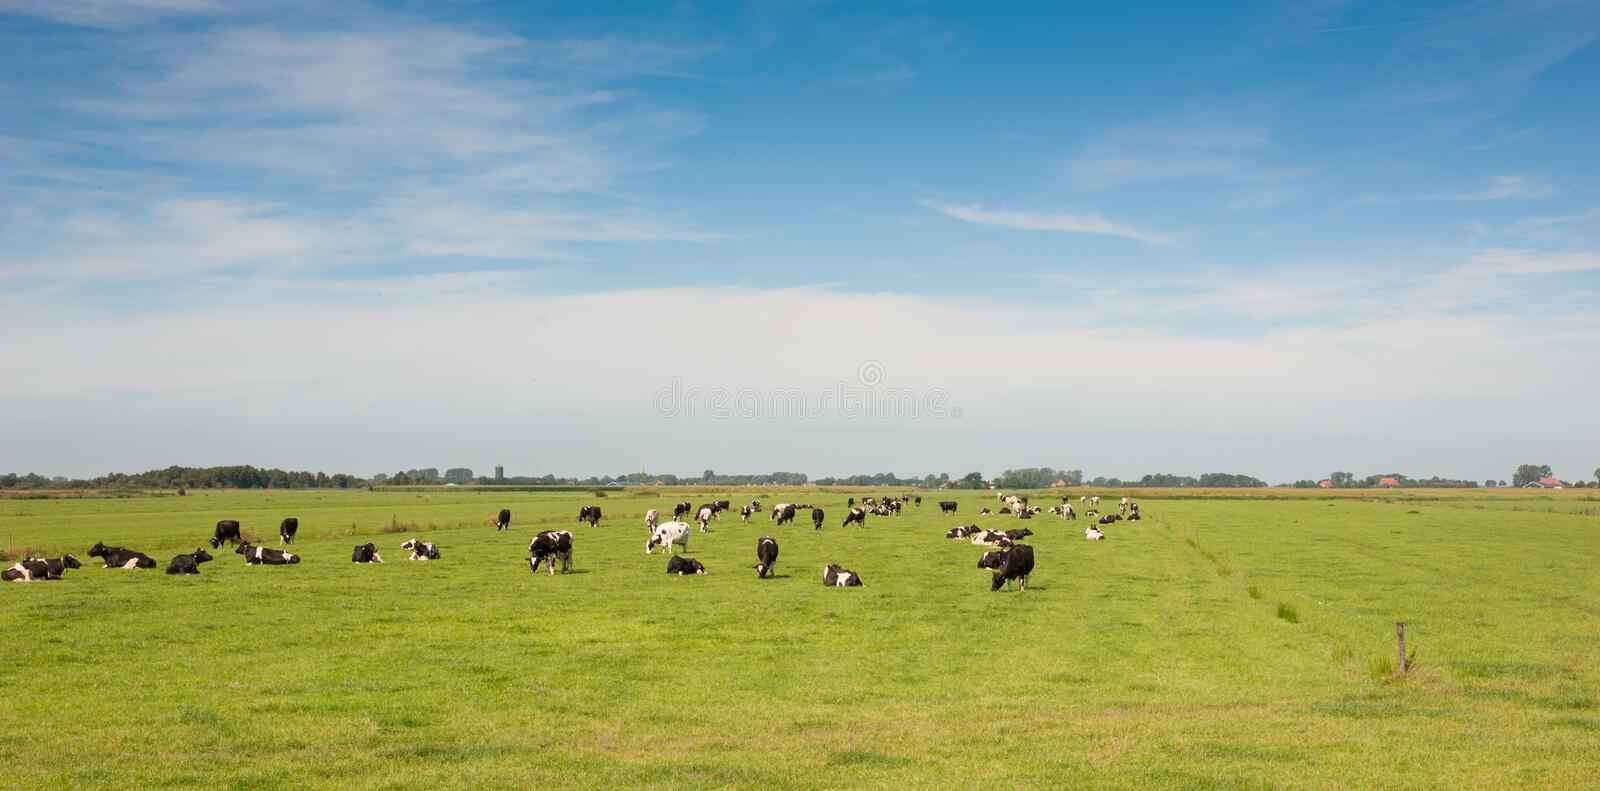 Cows Grazing In A Field Stock Photo